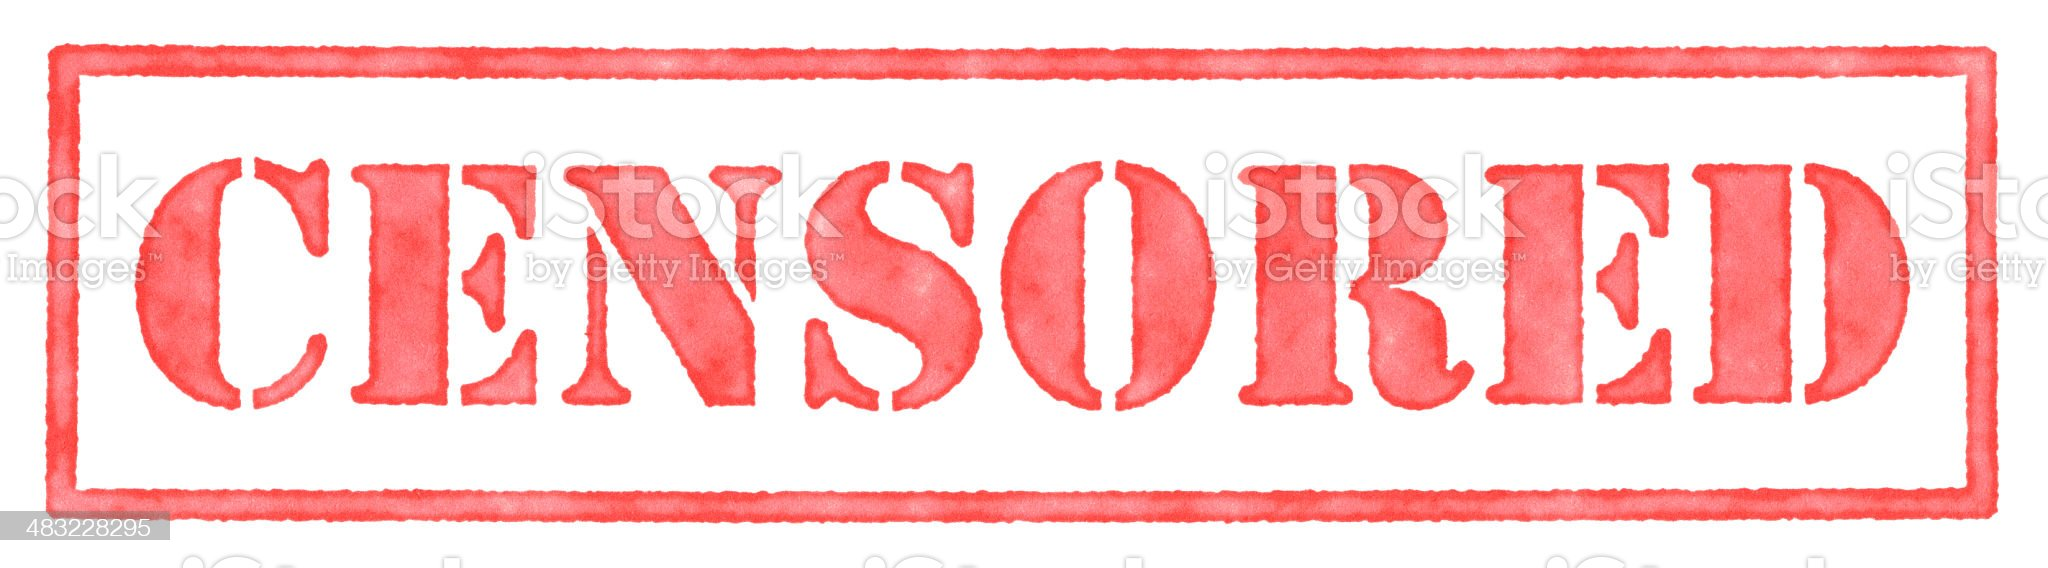 Censored Stamp royalty-free stock photo